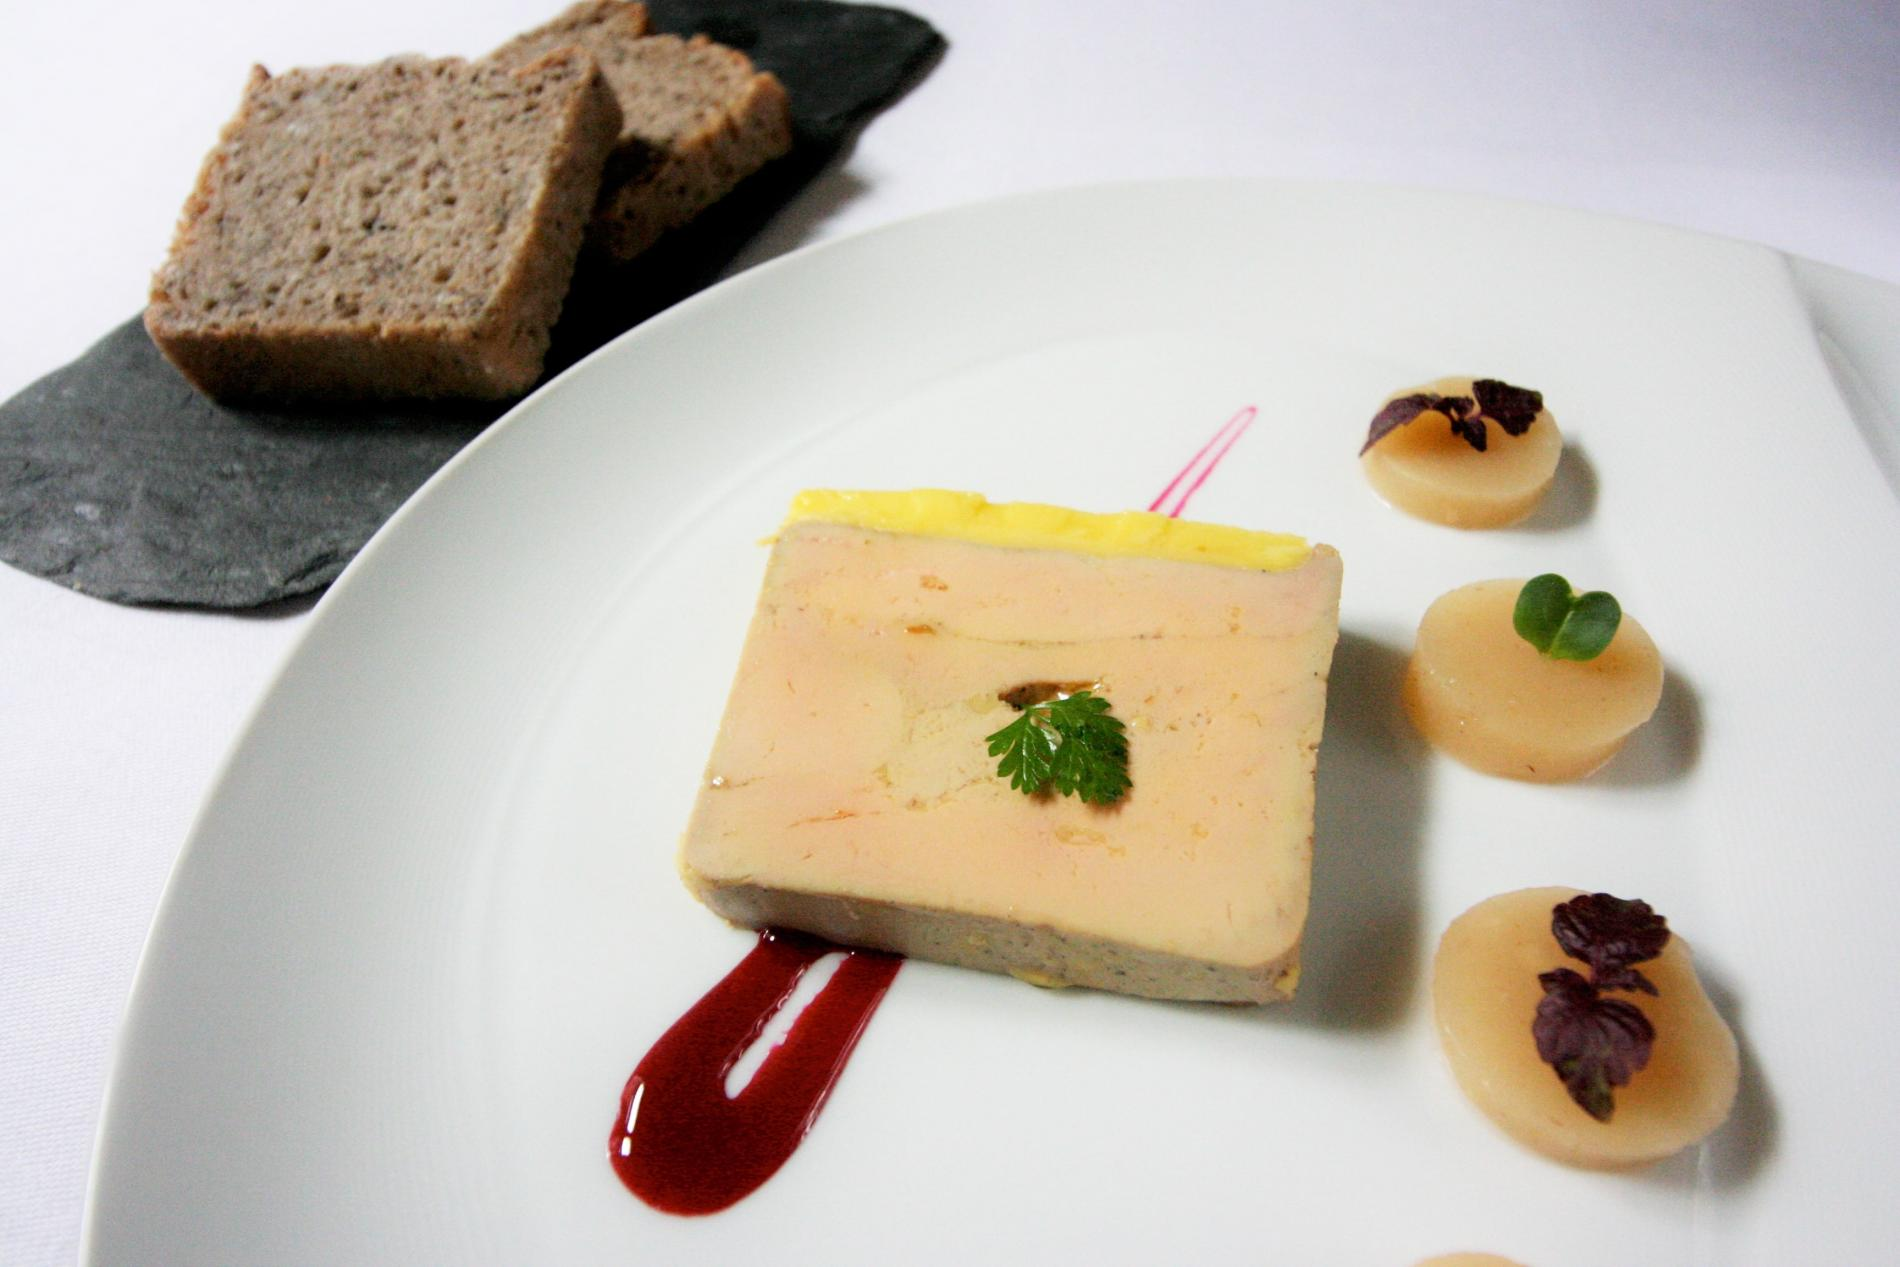 The homemade Foie Gras